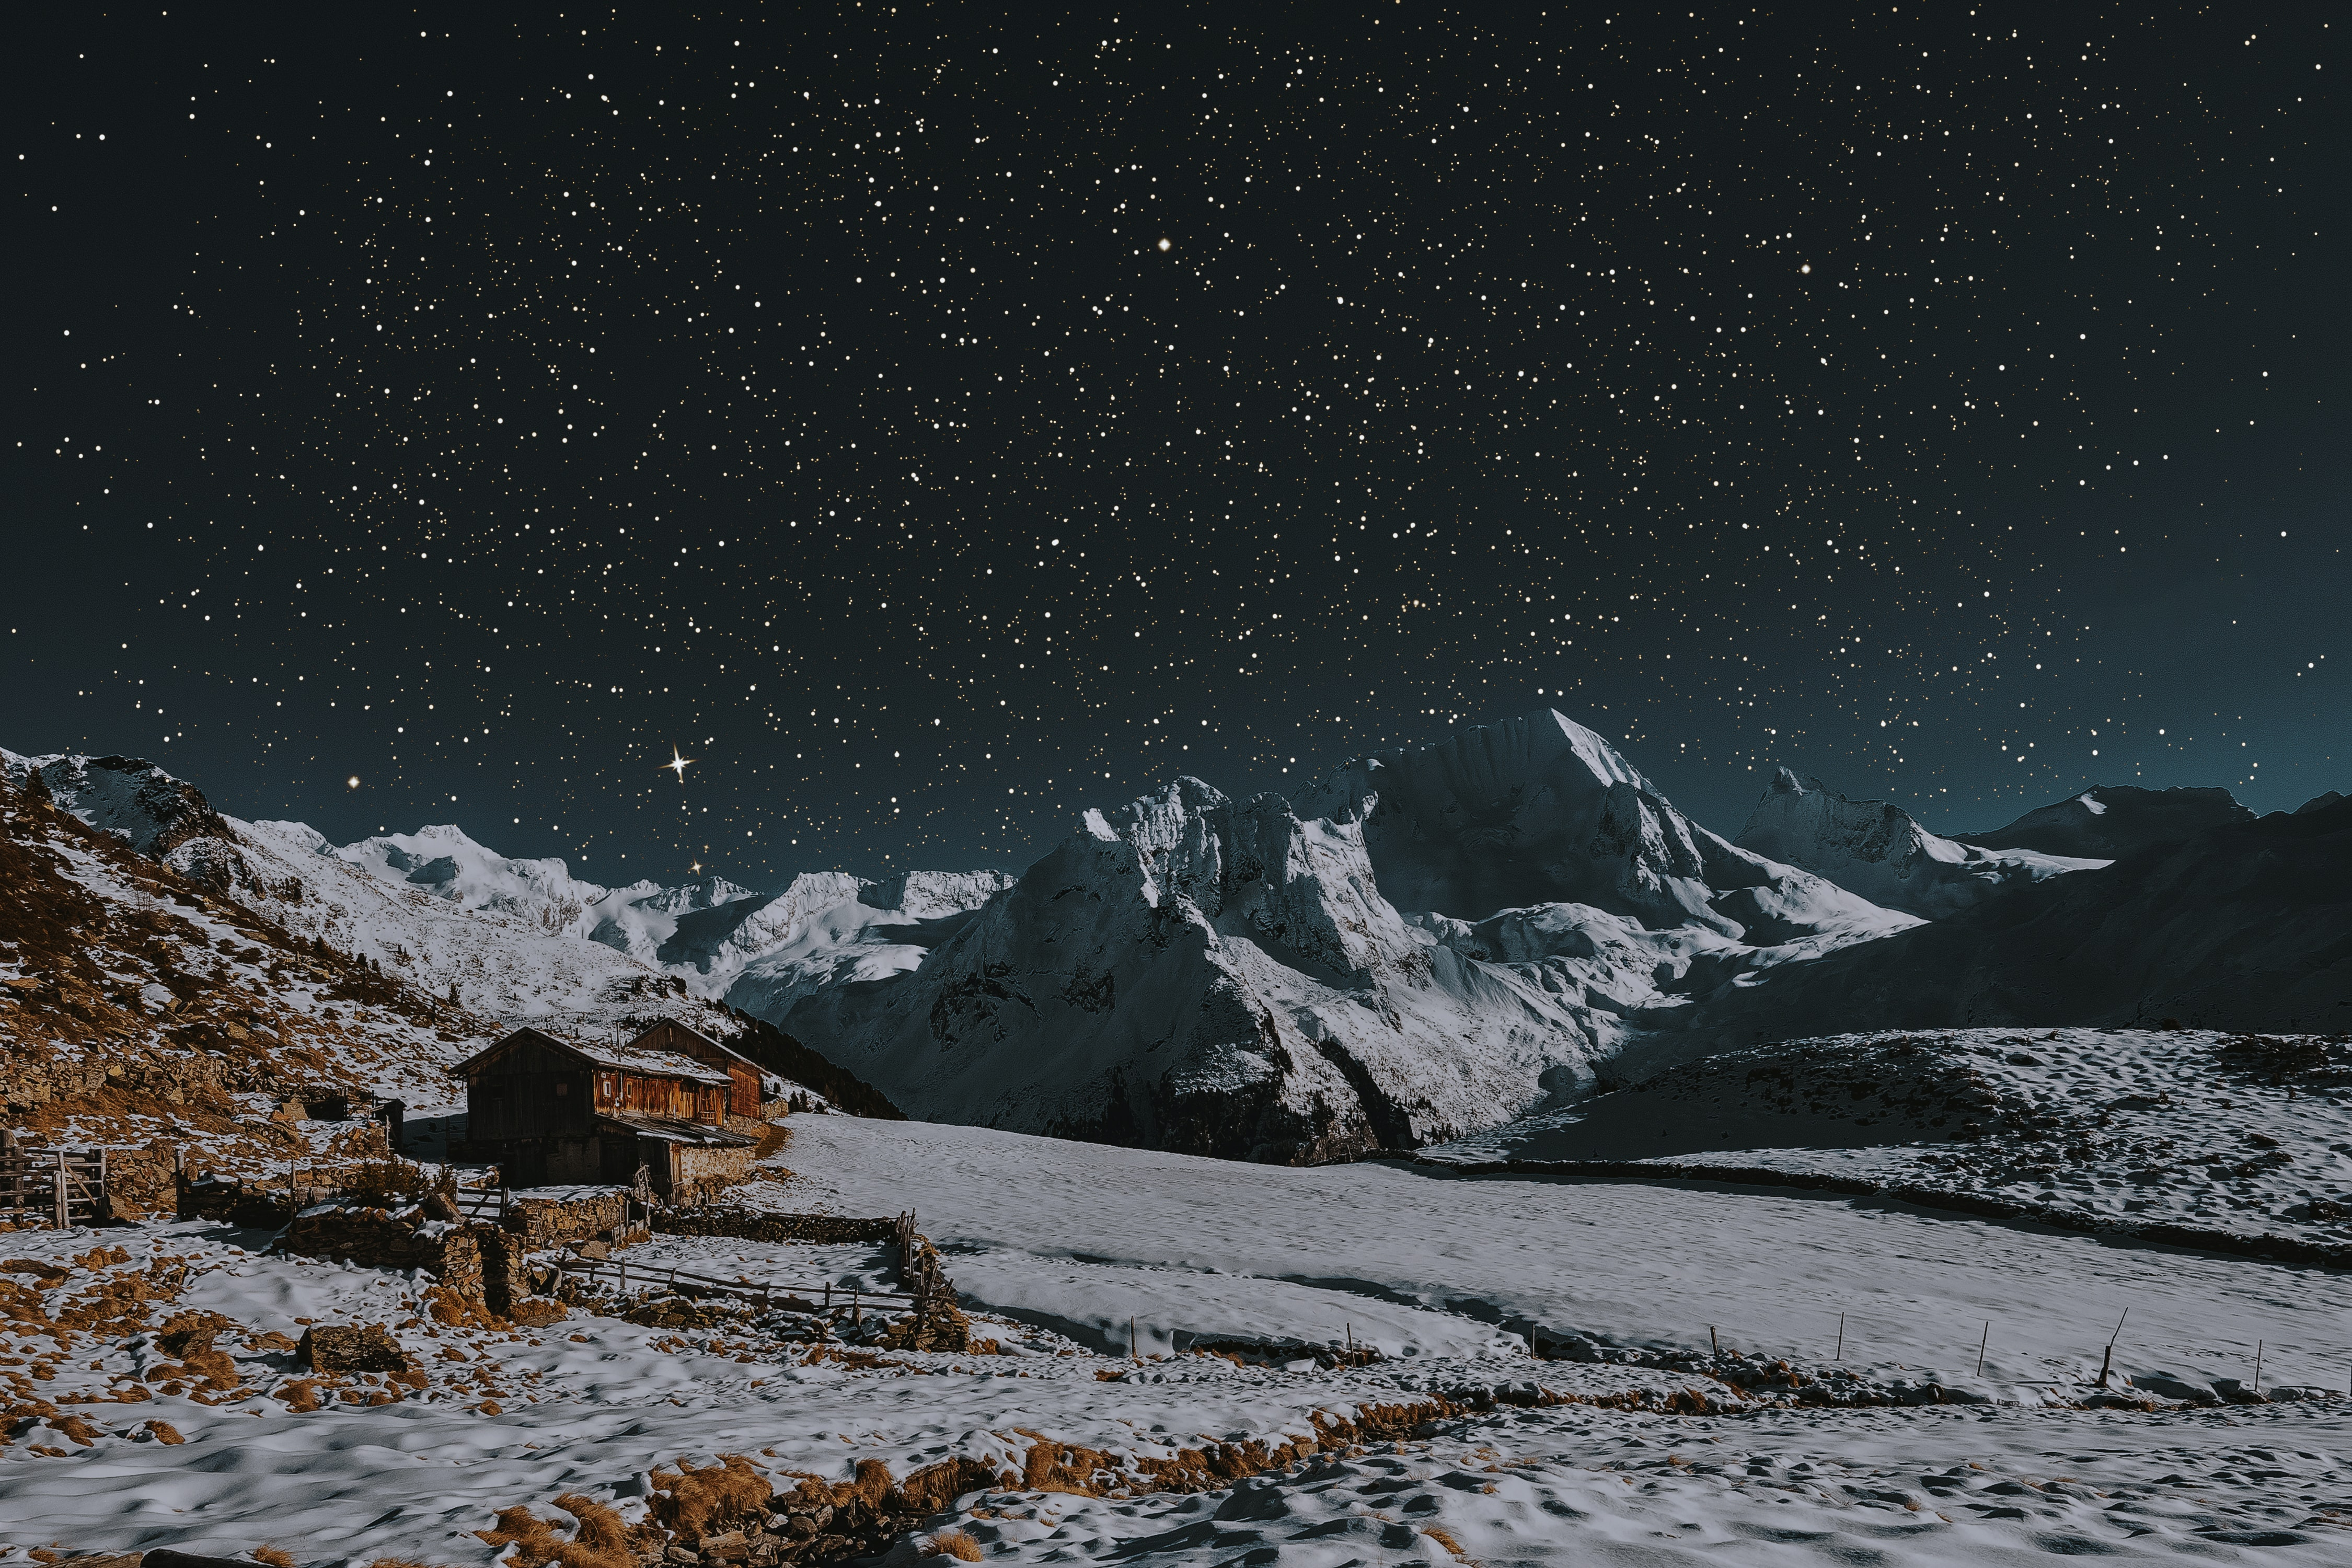 snow covered mountains under dark sky